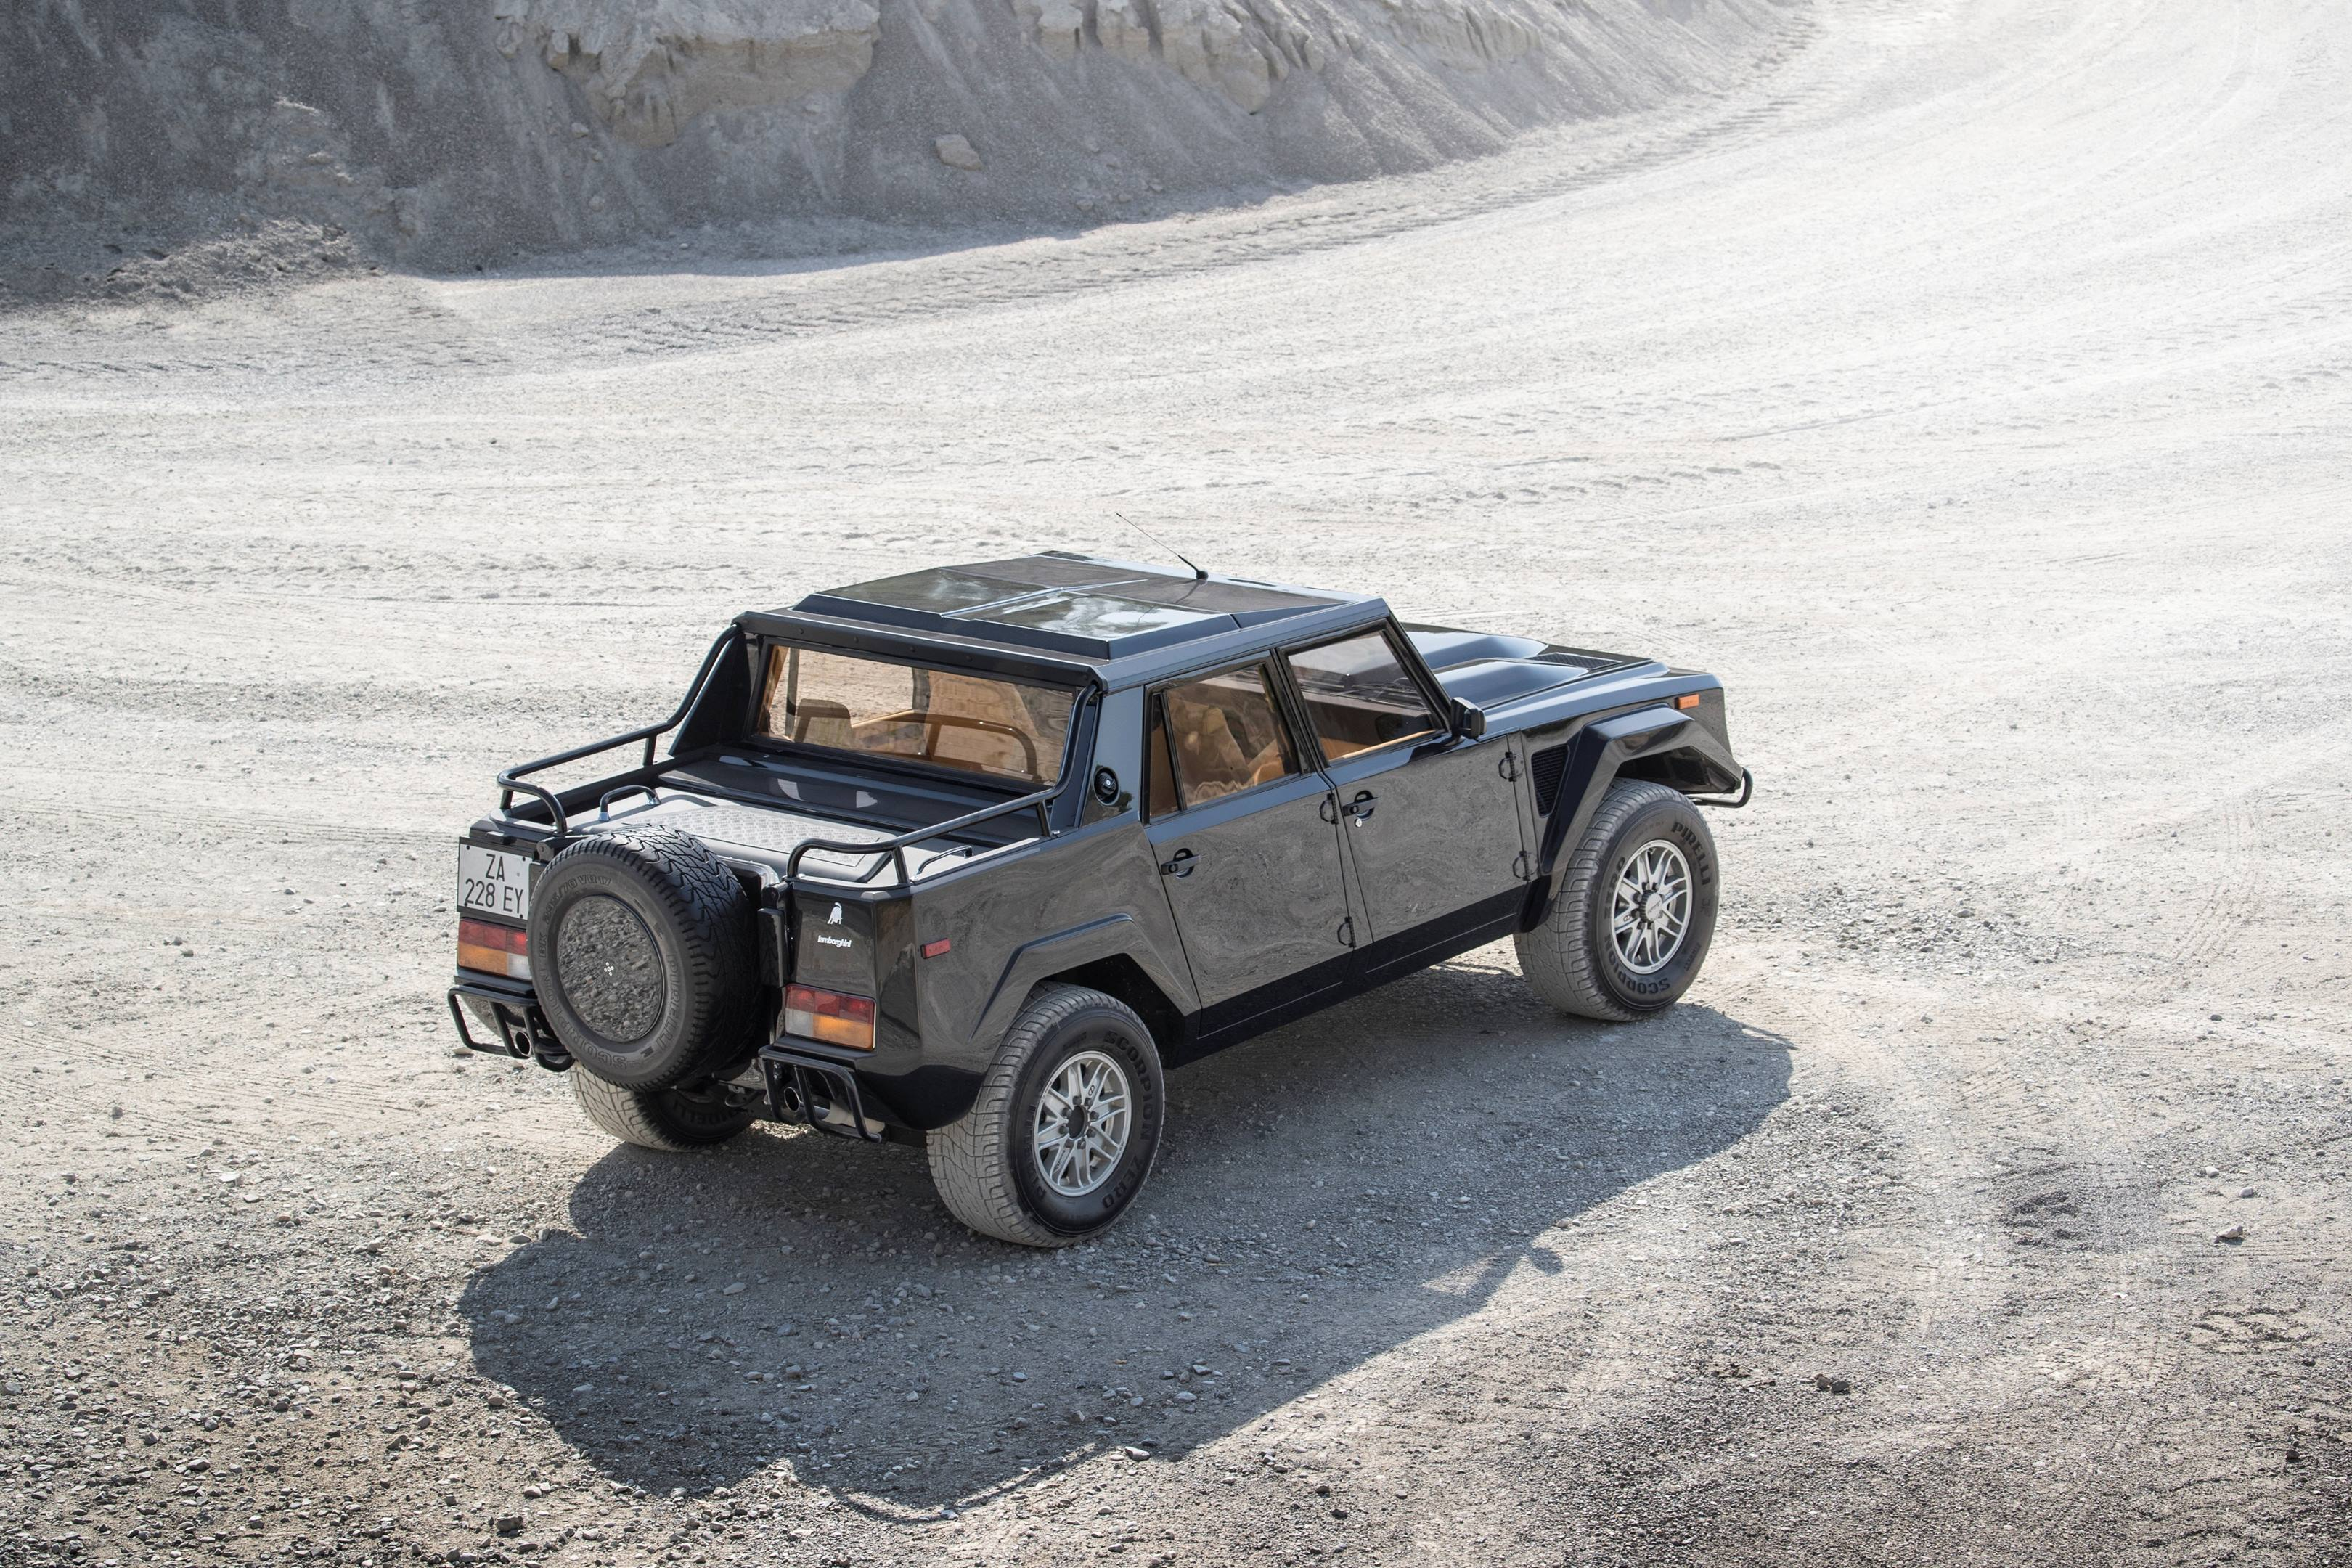 LM002 off road